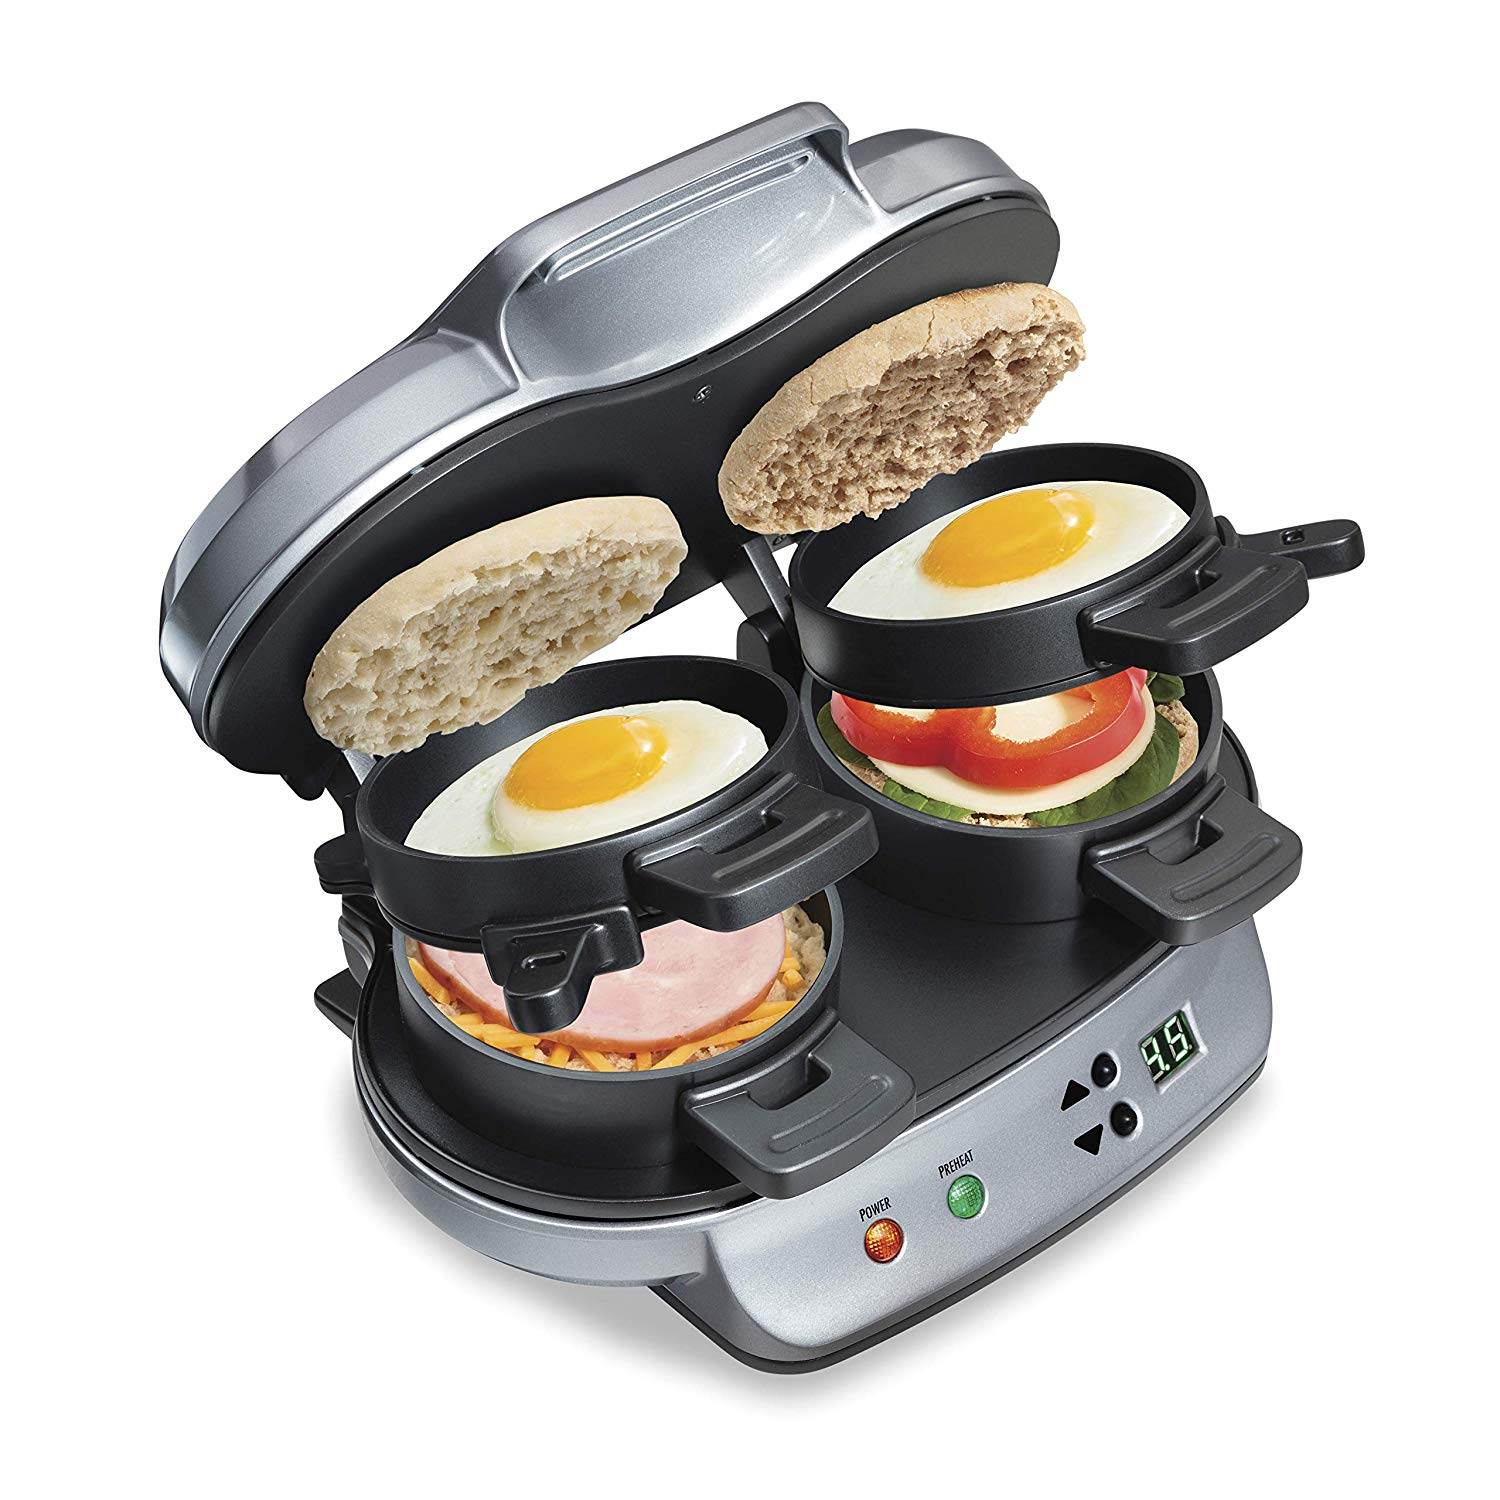 Hamilton Beach Dual Breakfast Sandwich Maker with Timer- best gifts for moms